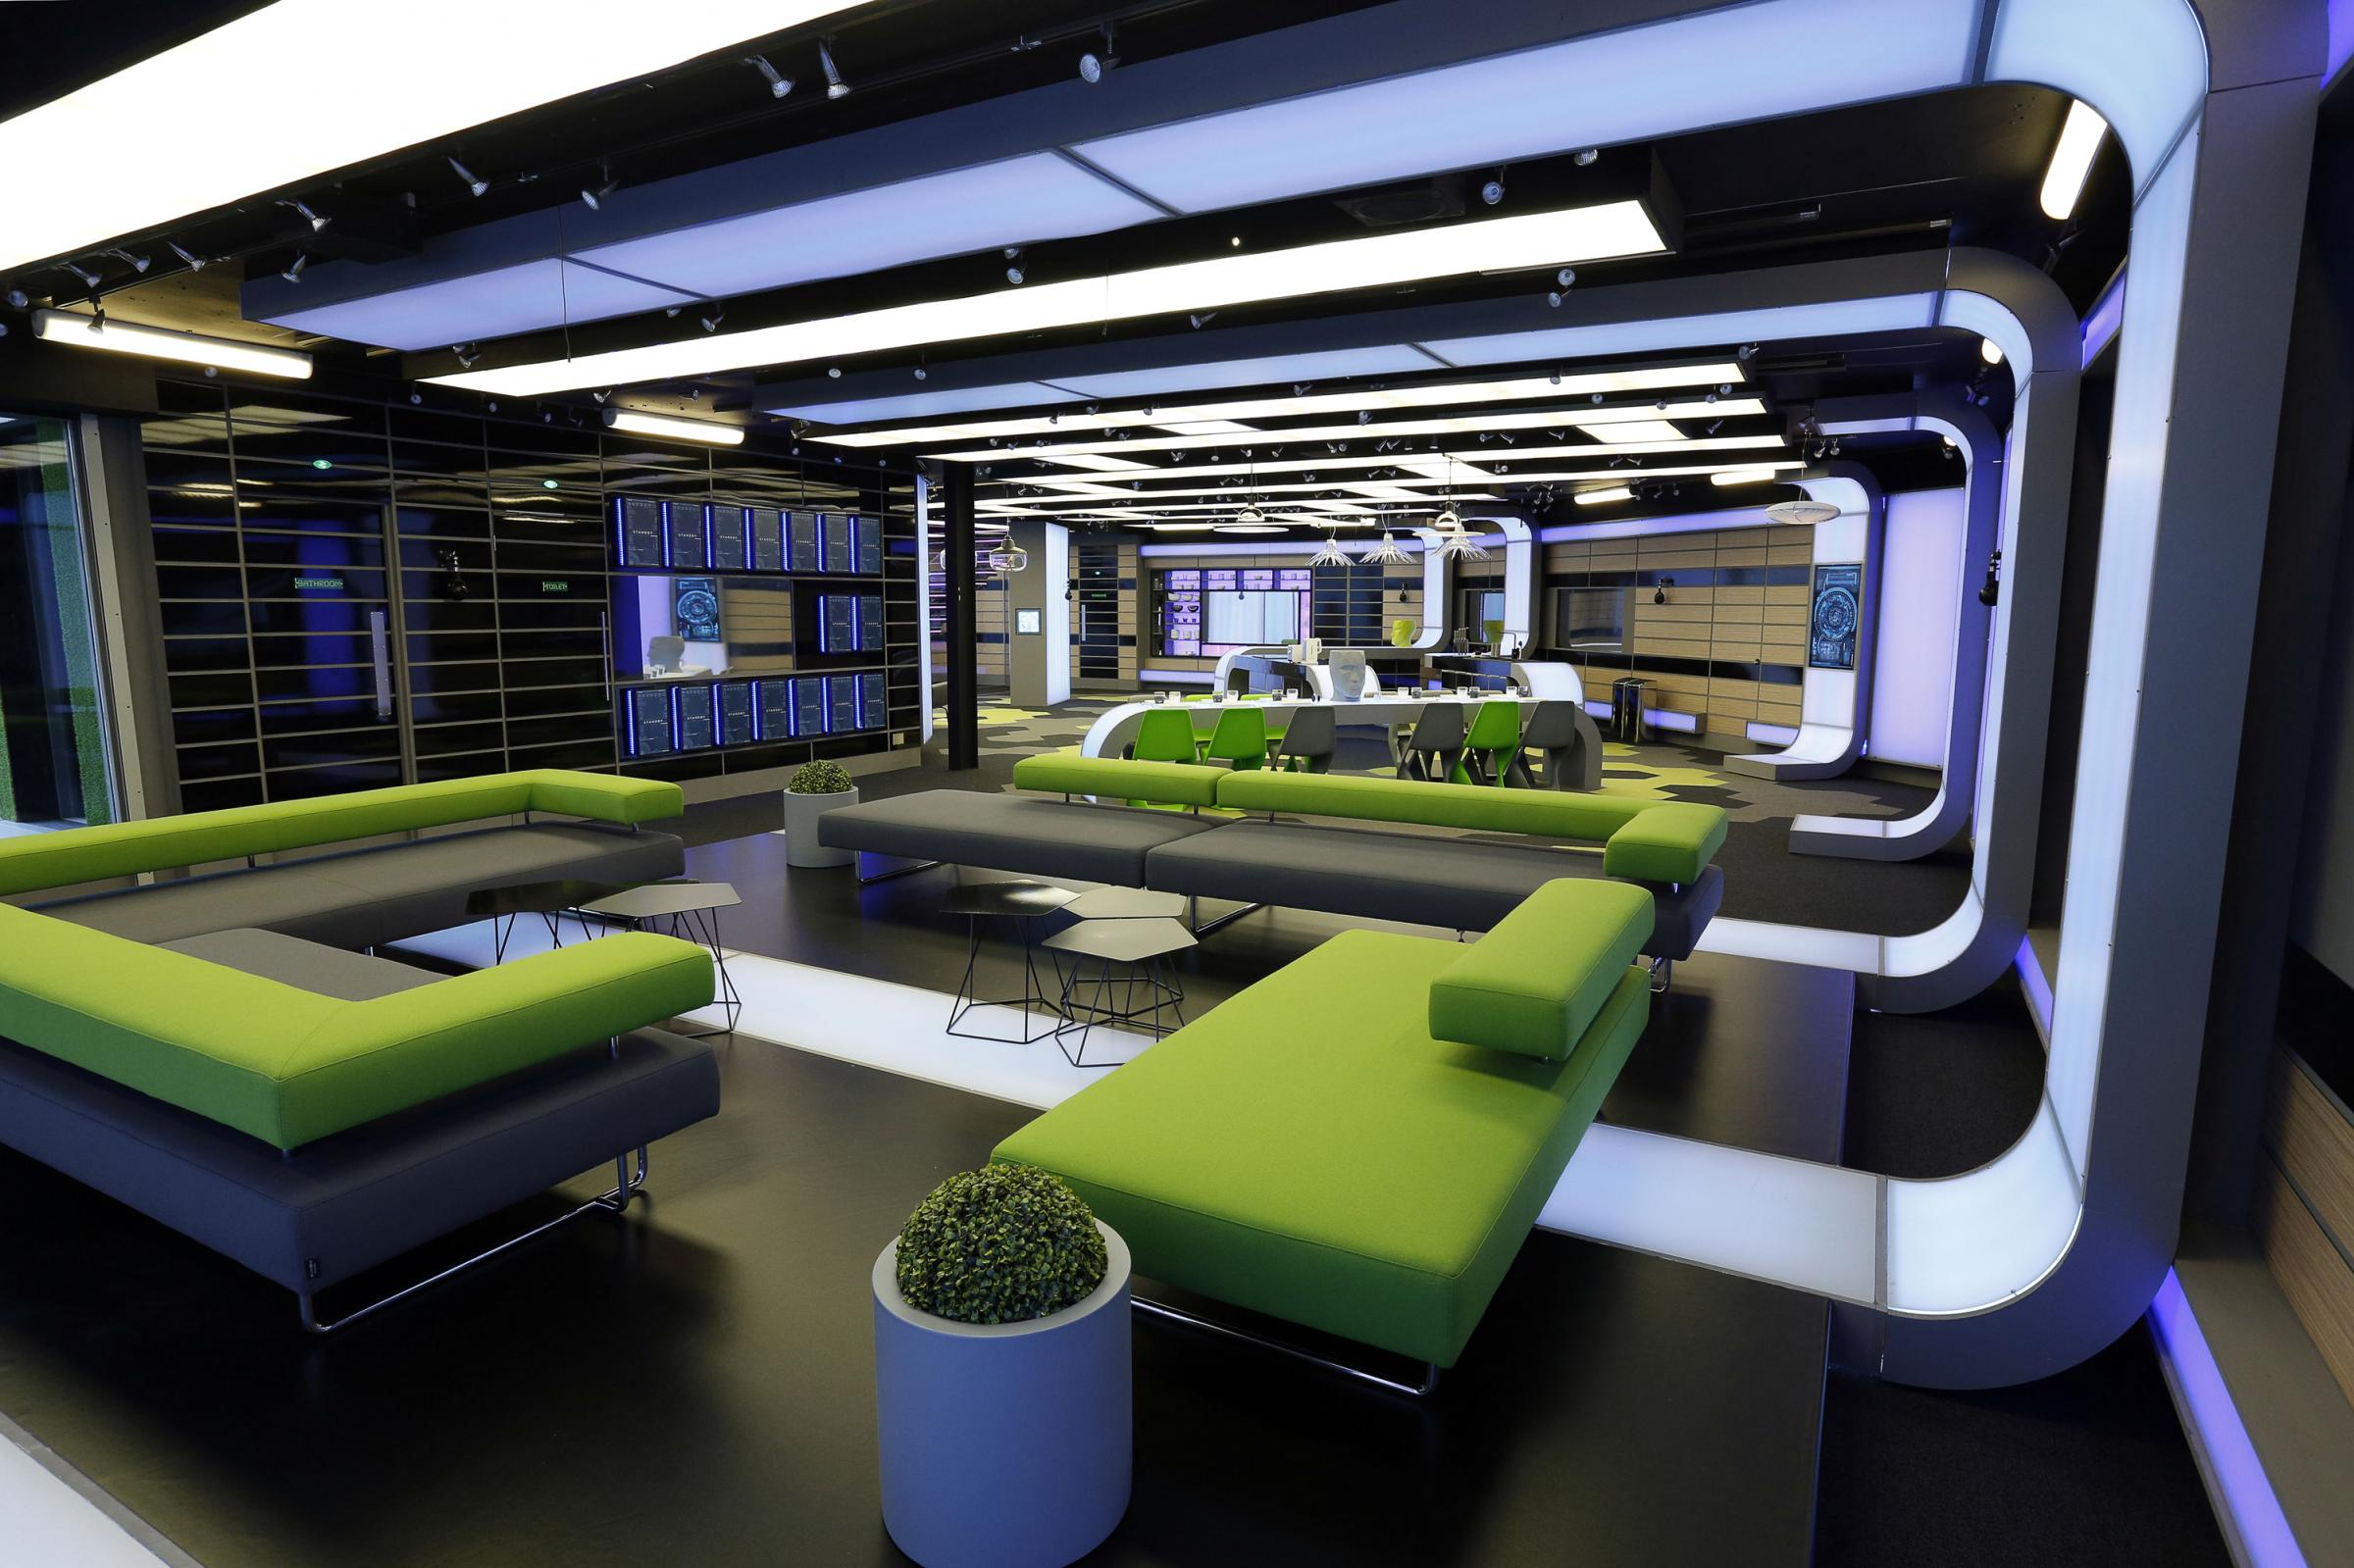 Big brother is back in borehamwood with futuristic new house at elstree studios borehamwood times